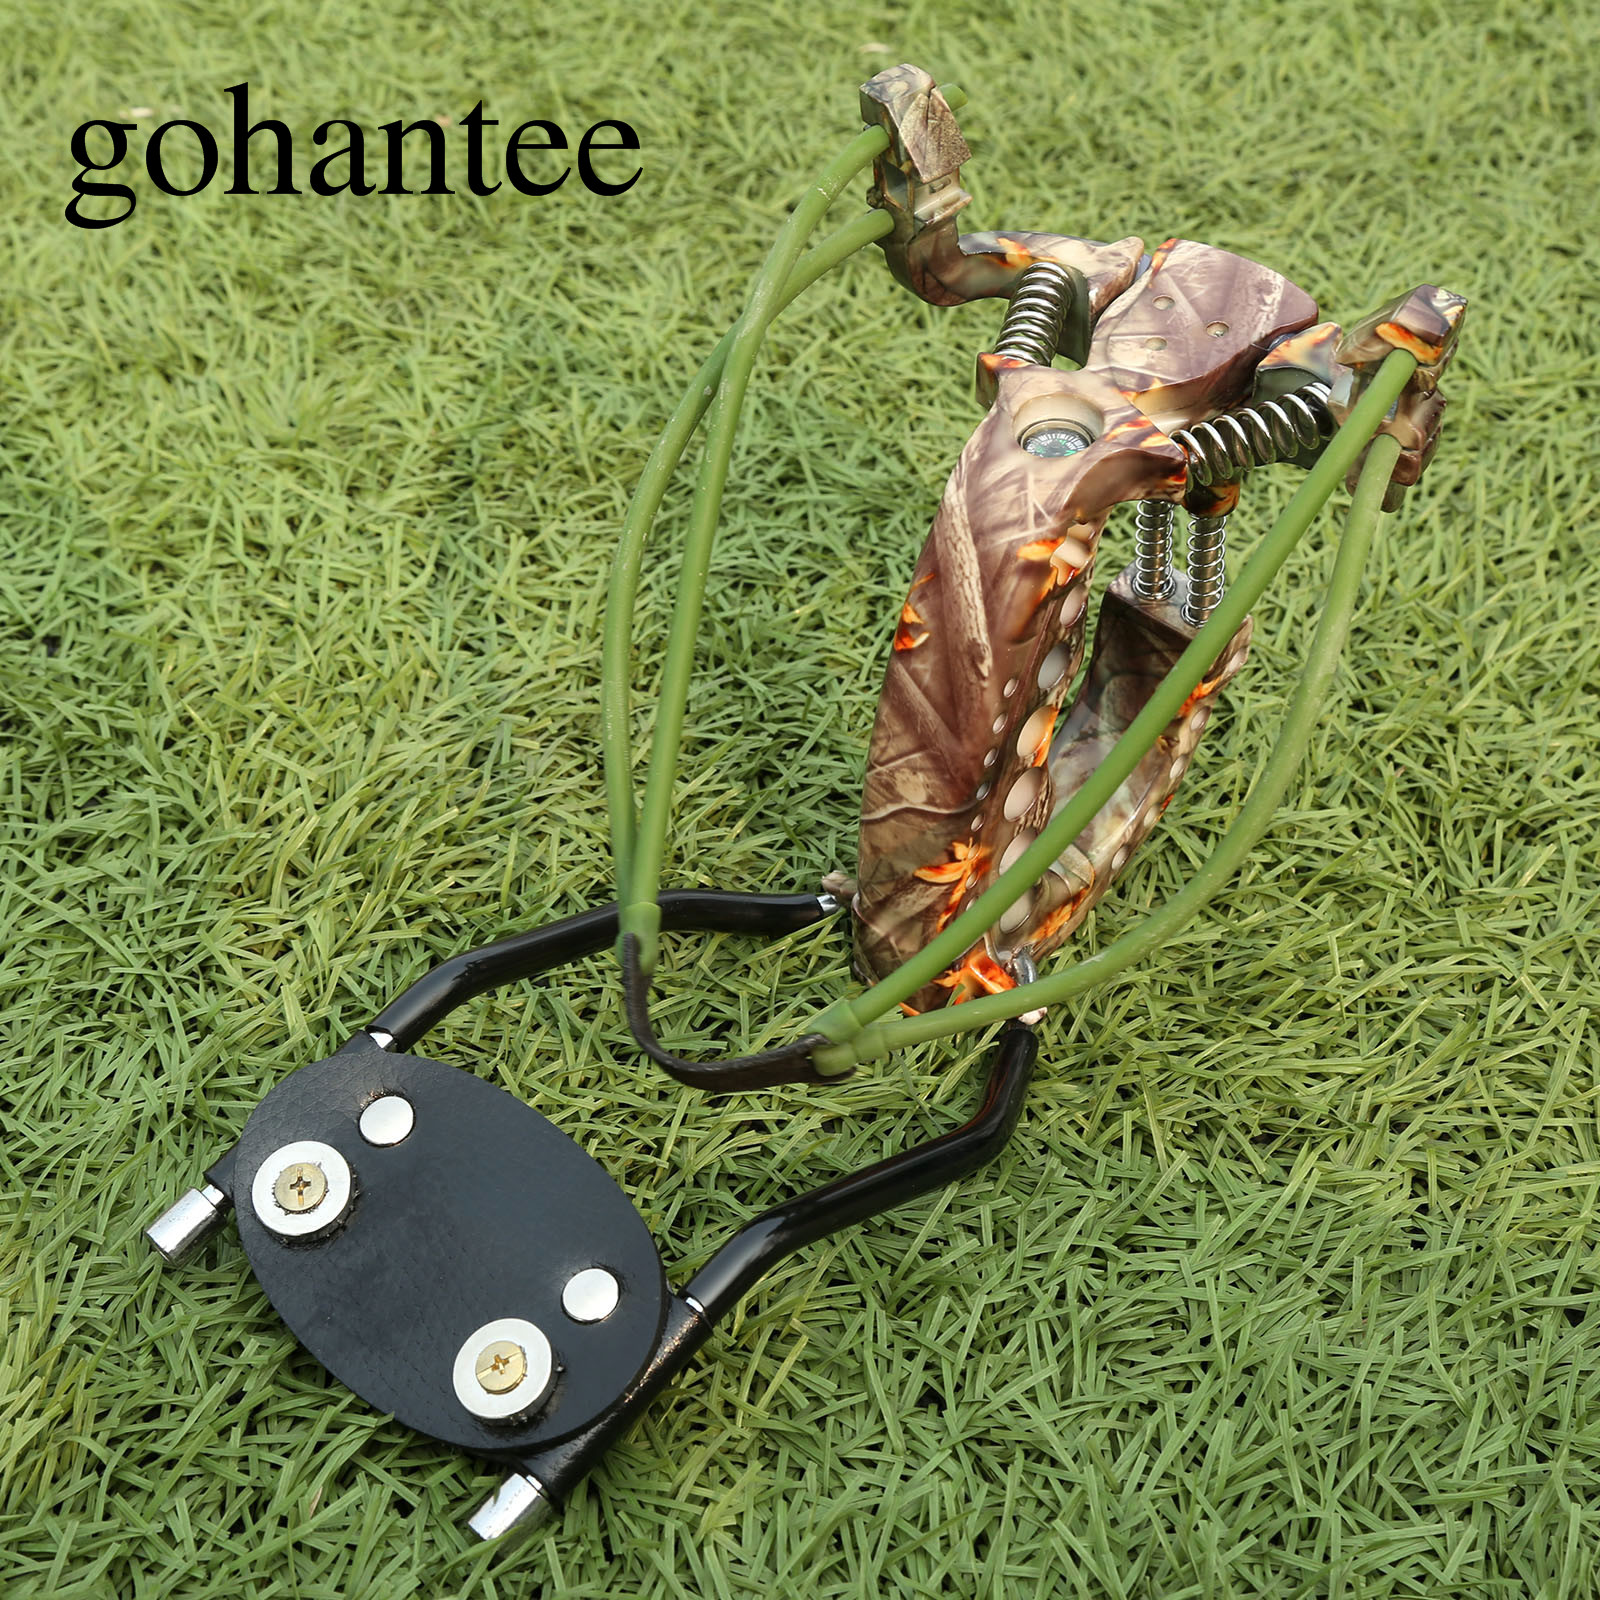 gohantee Professional Strong Powerful Heavy Duty Slingshot with Folding Wrist Brace Outdoor Hunting Slingshots Catapult Shooting